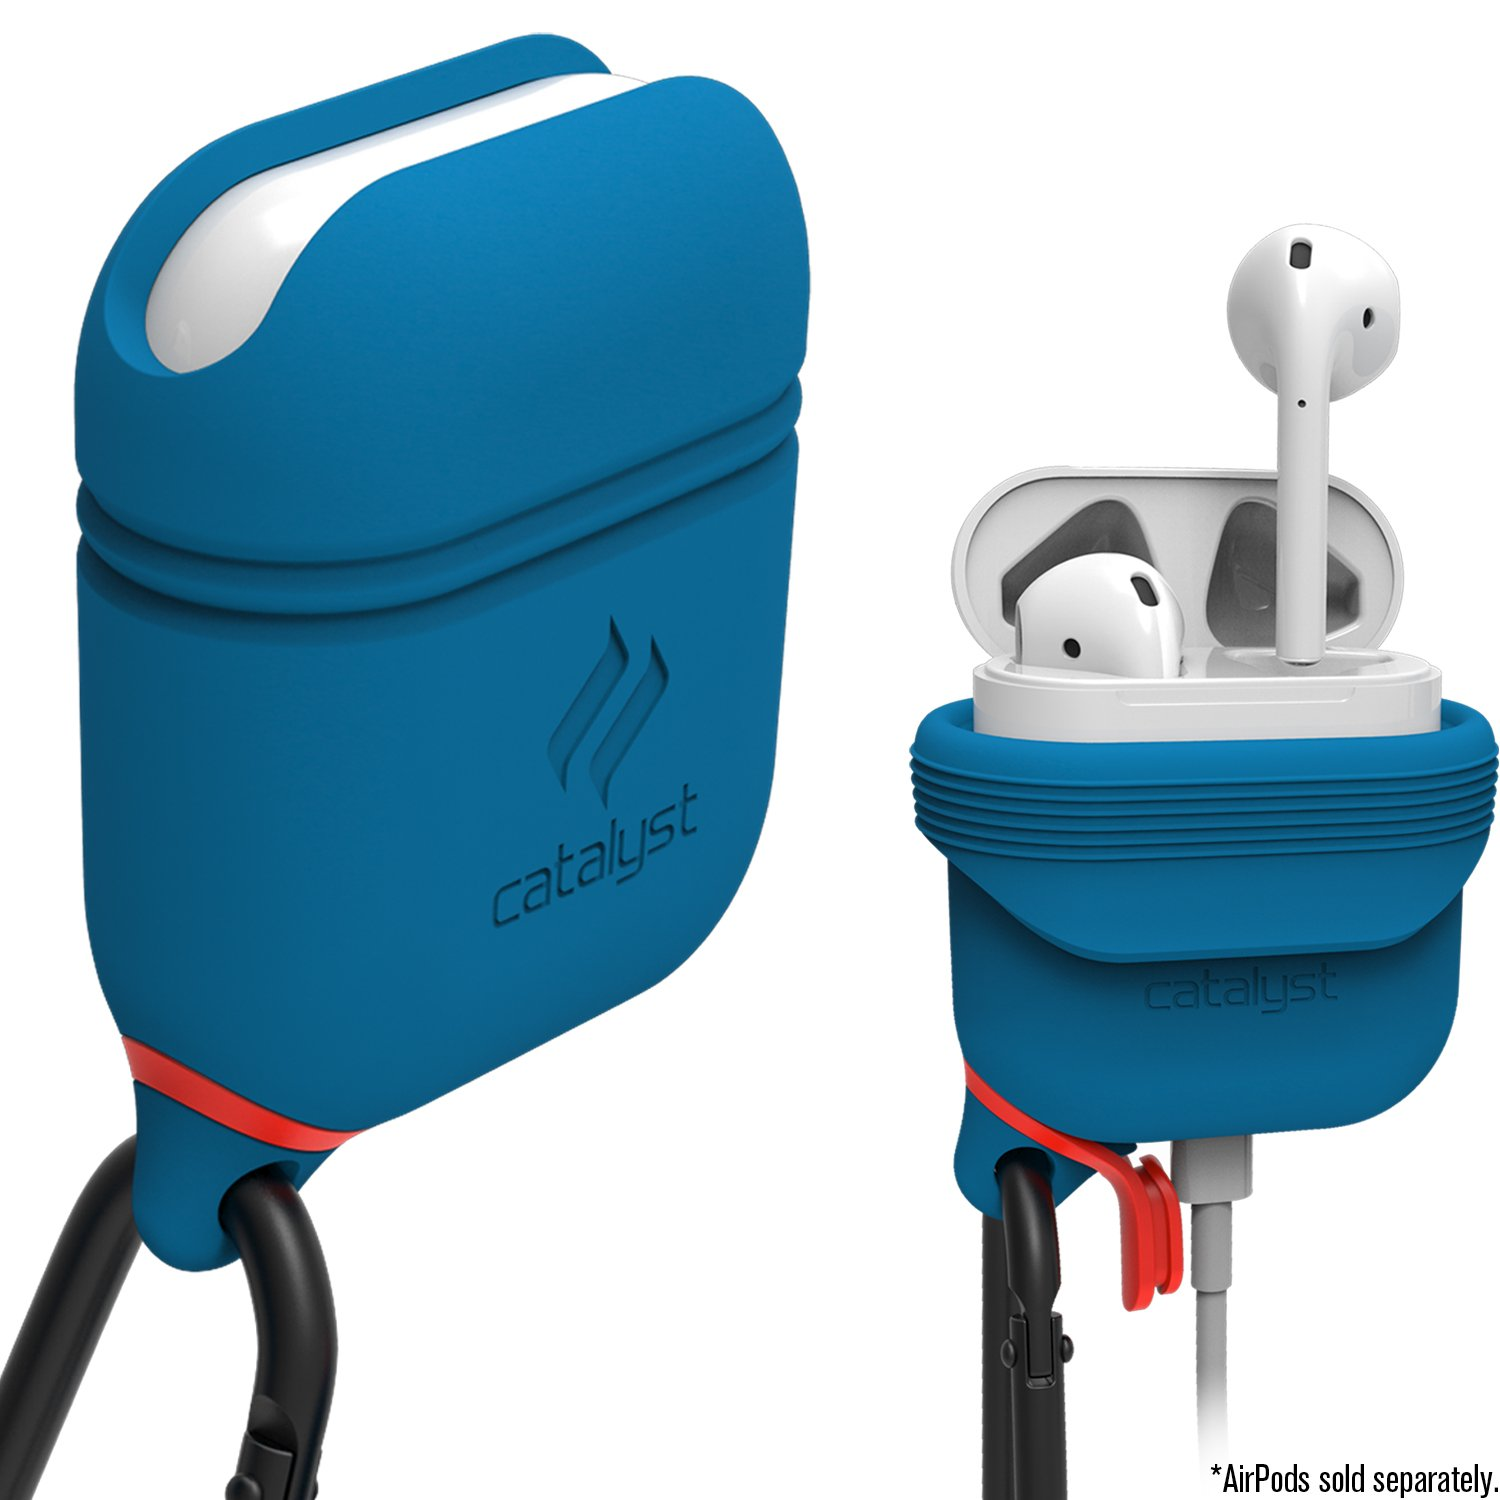 Catalyst Airpods Case - Shock Drop Proof air pods Protective Cover Waterproof Soft Skin, Anti-lost carabiner, Silicone sealing, Hassle free charging - apple headphones accessories, Blueridge/Sunset